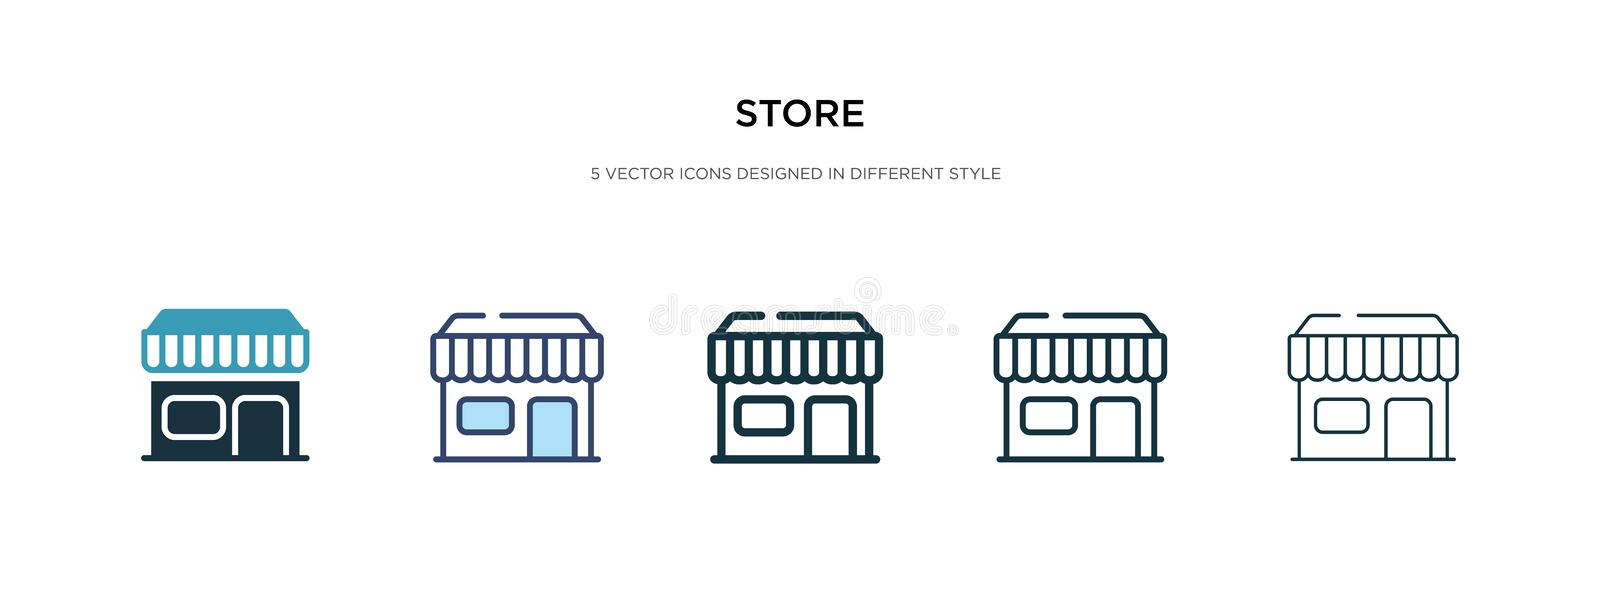 Store icon in different style vector illustration. two colored and black store vector icons designed in filled, outline, line and vector illustration